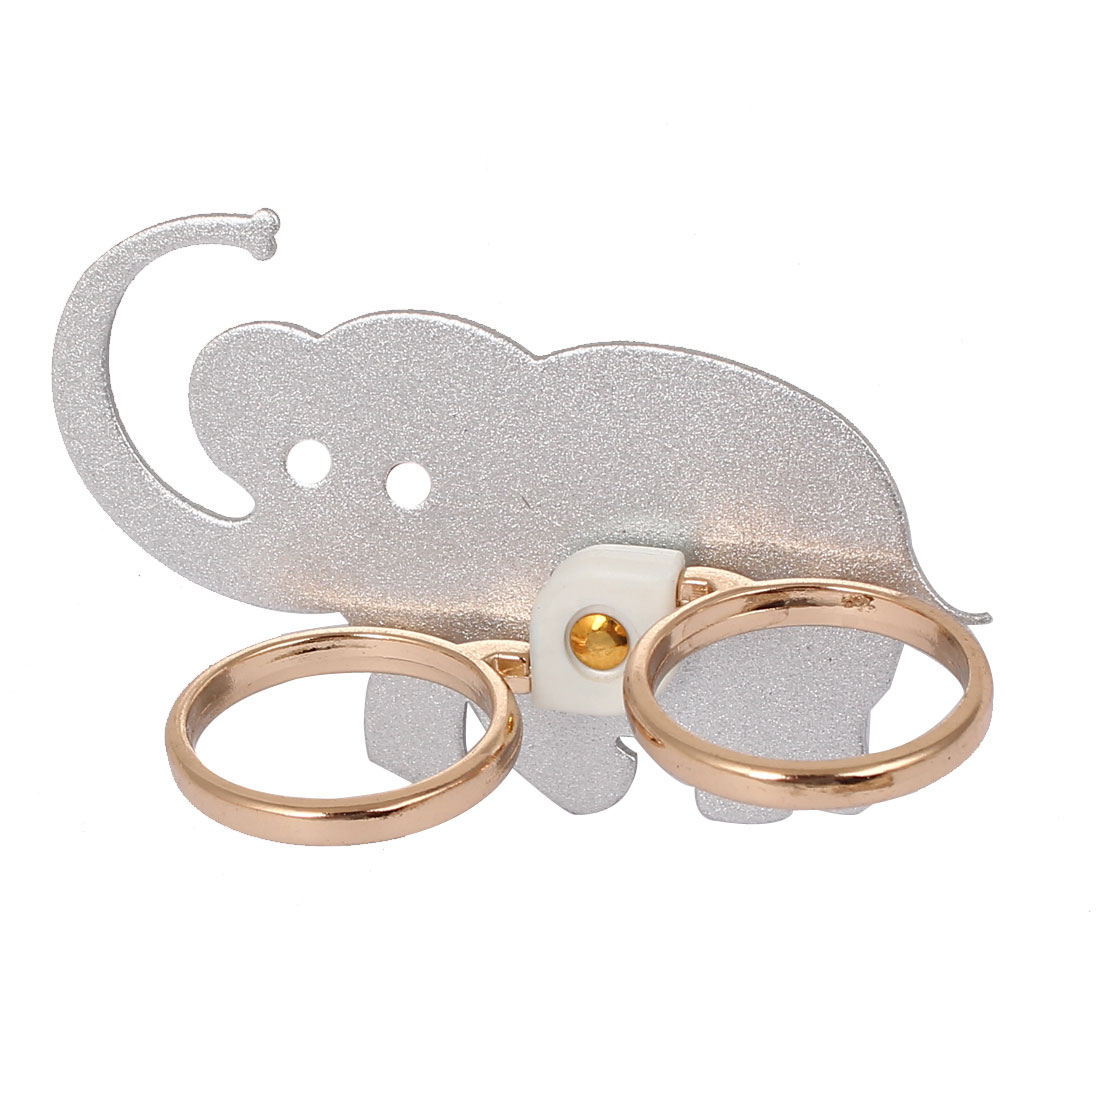 Mobile Phone Cellphone Elephant Pattern Adhesive Finger Ring Grip Stand Mount Silver Tone